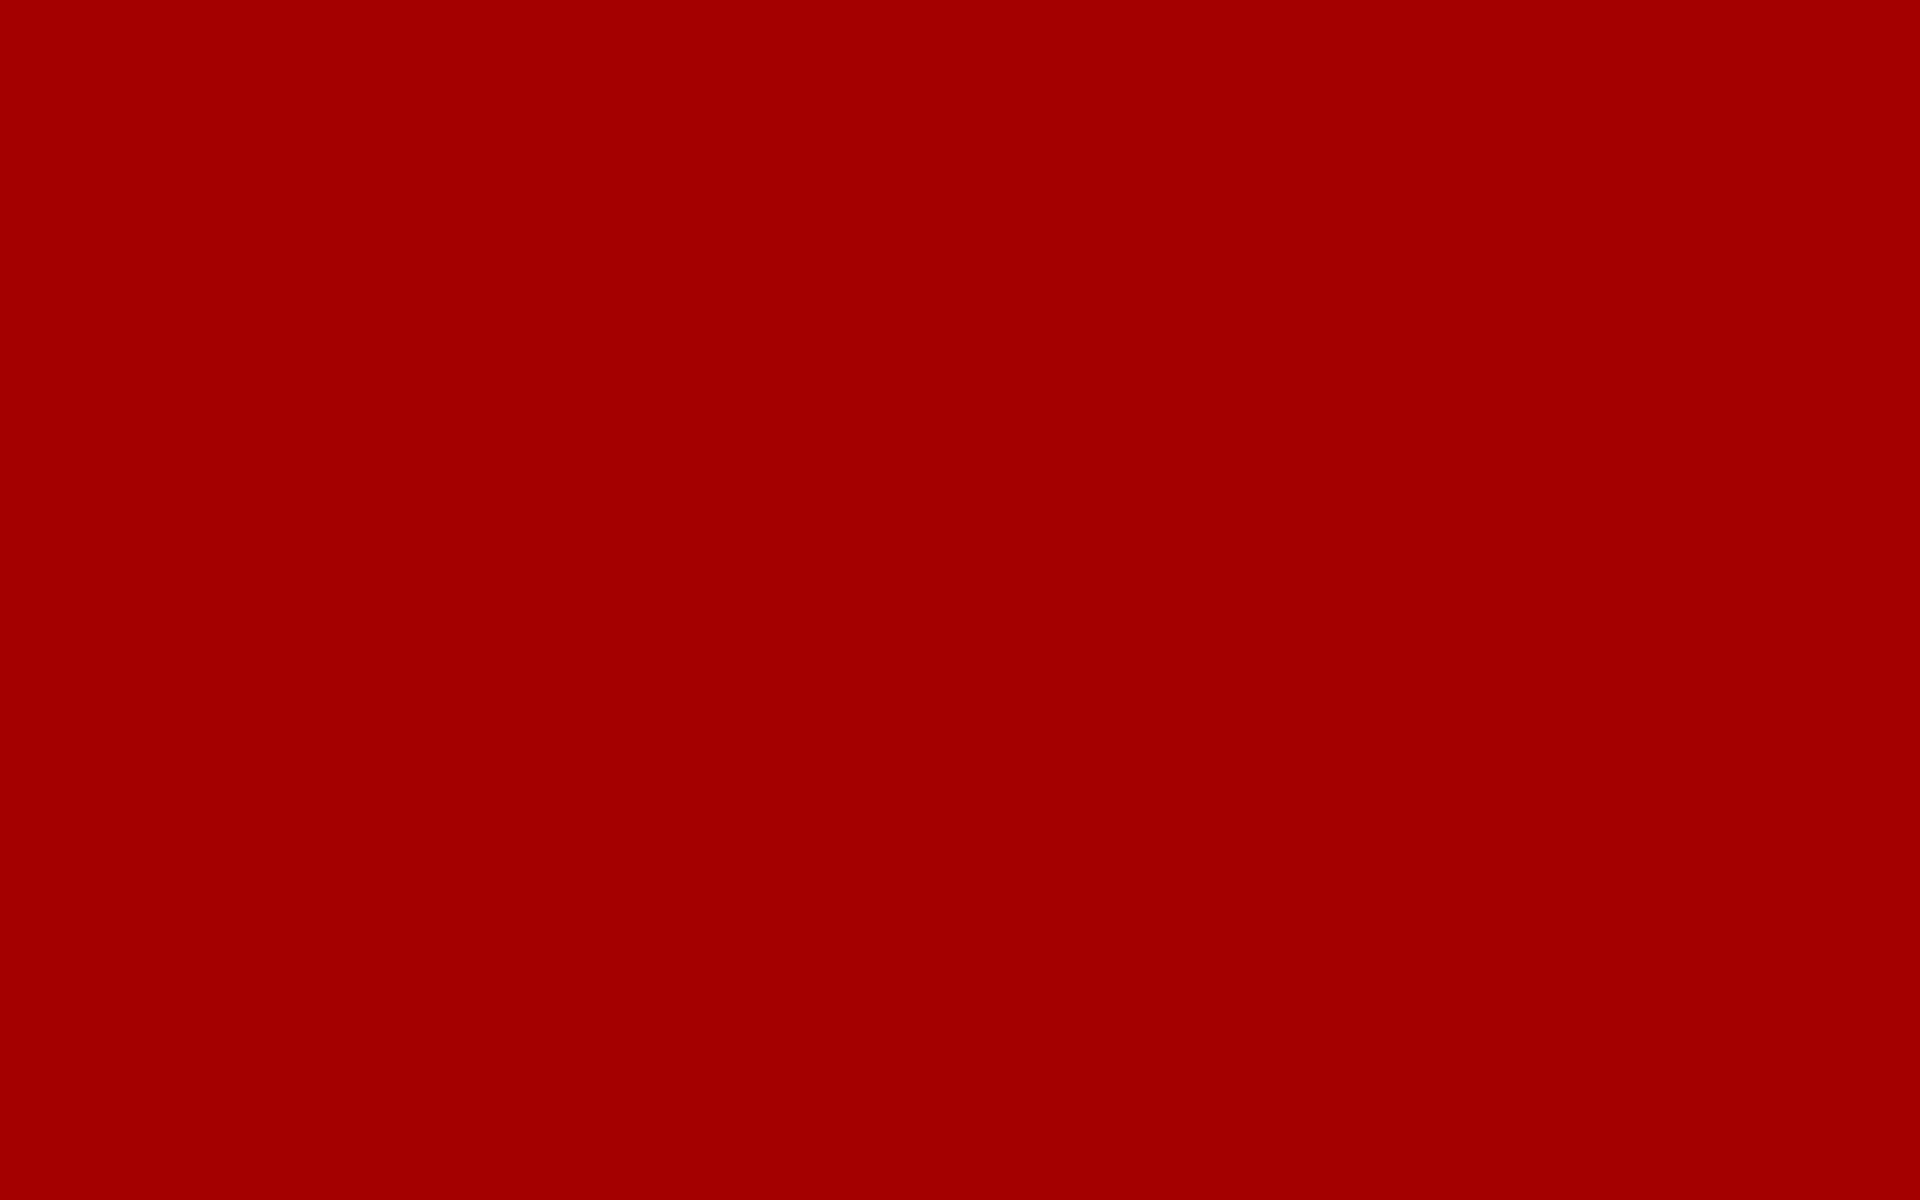 1920x1200 Dark Candy Apple Red Solid Color Background